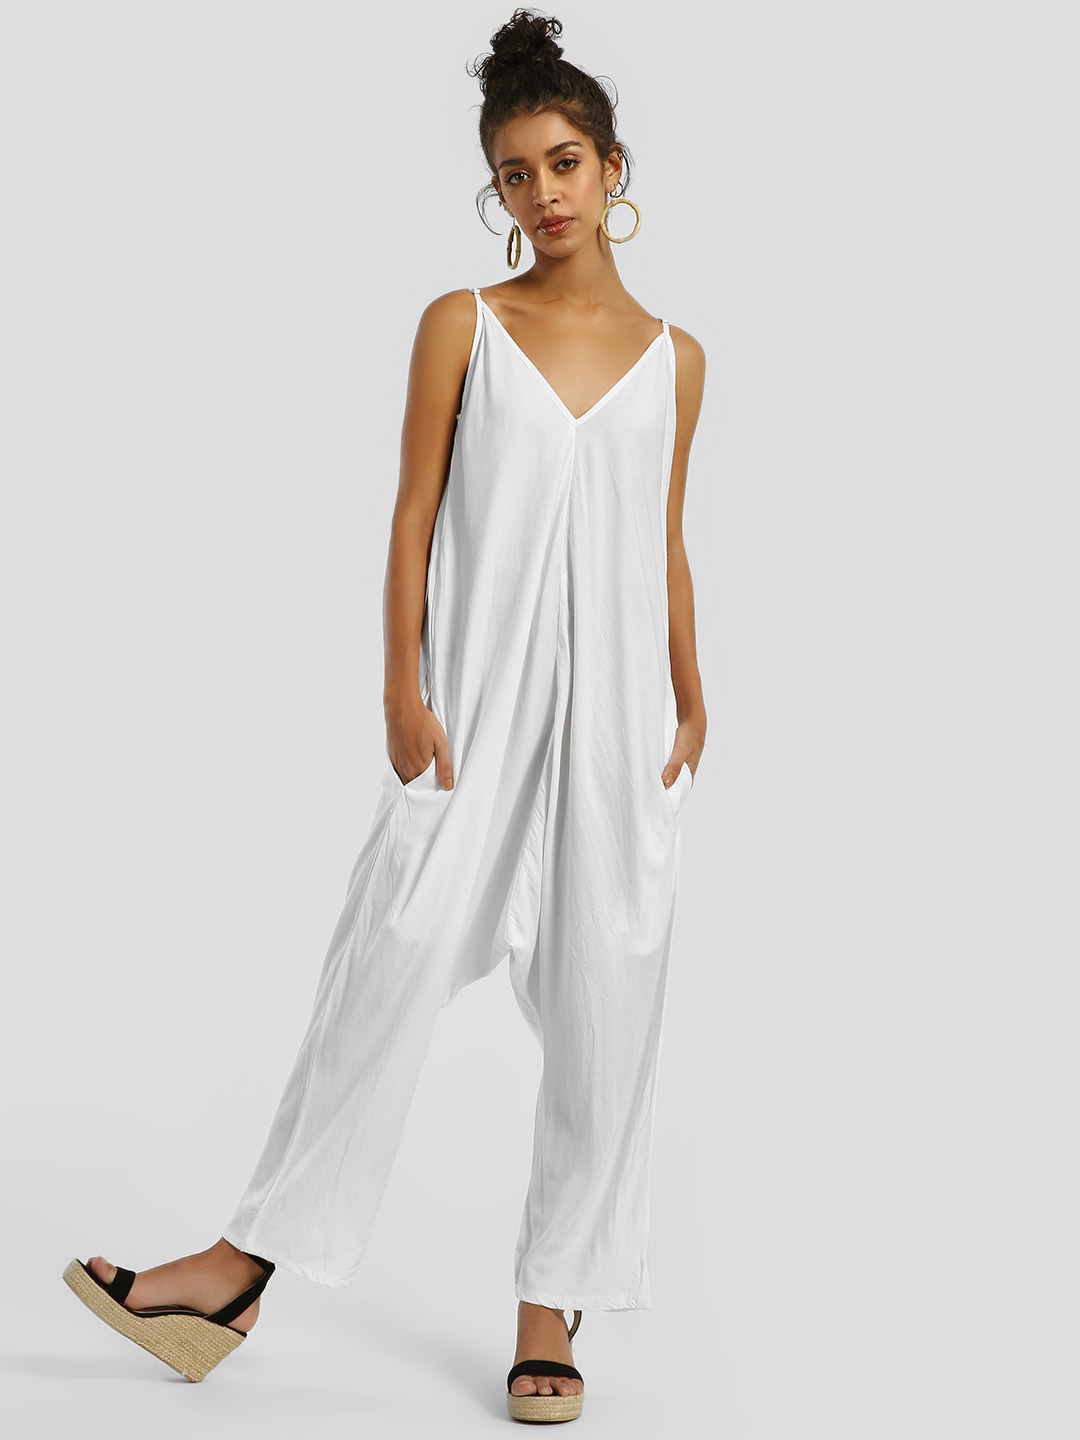 The Paperdoll Company White Strappy Drop Crotch Cropped Jumpsuit 1